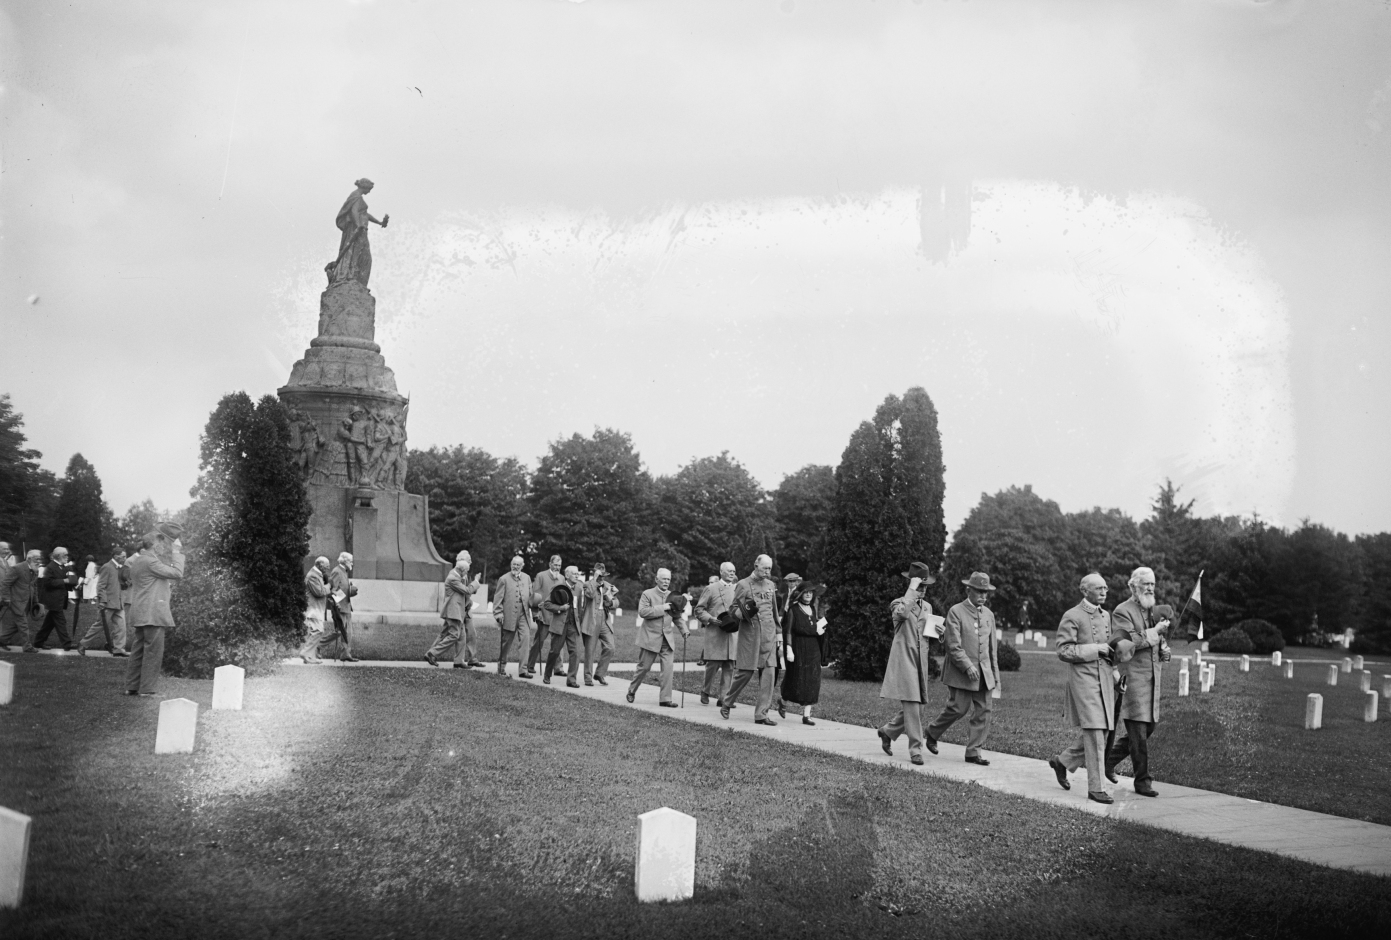 The Confederate Memorial at Arlington in 1922, two years before President Coolidge spoke the words above. In the years to follow, the markers of those who wore the gray would multiply as the great heroes and warriors of the South shed mortality.